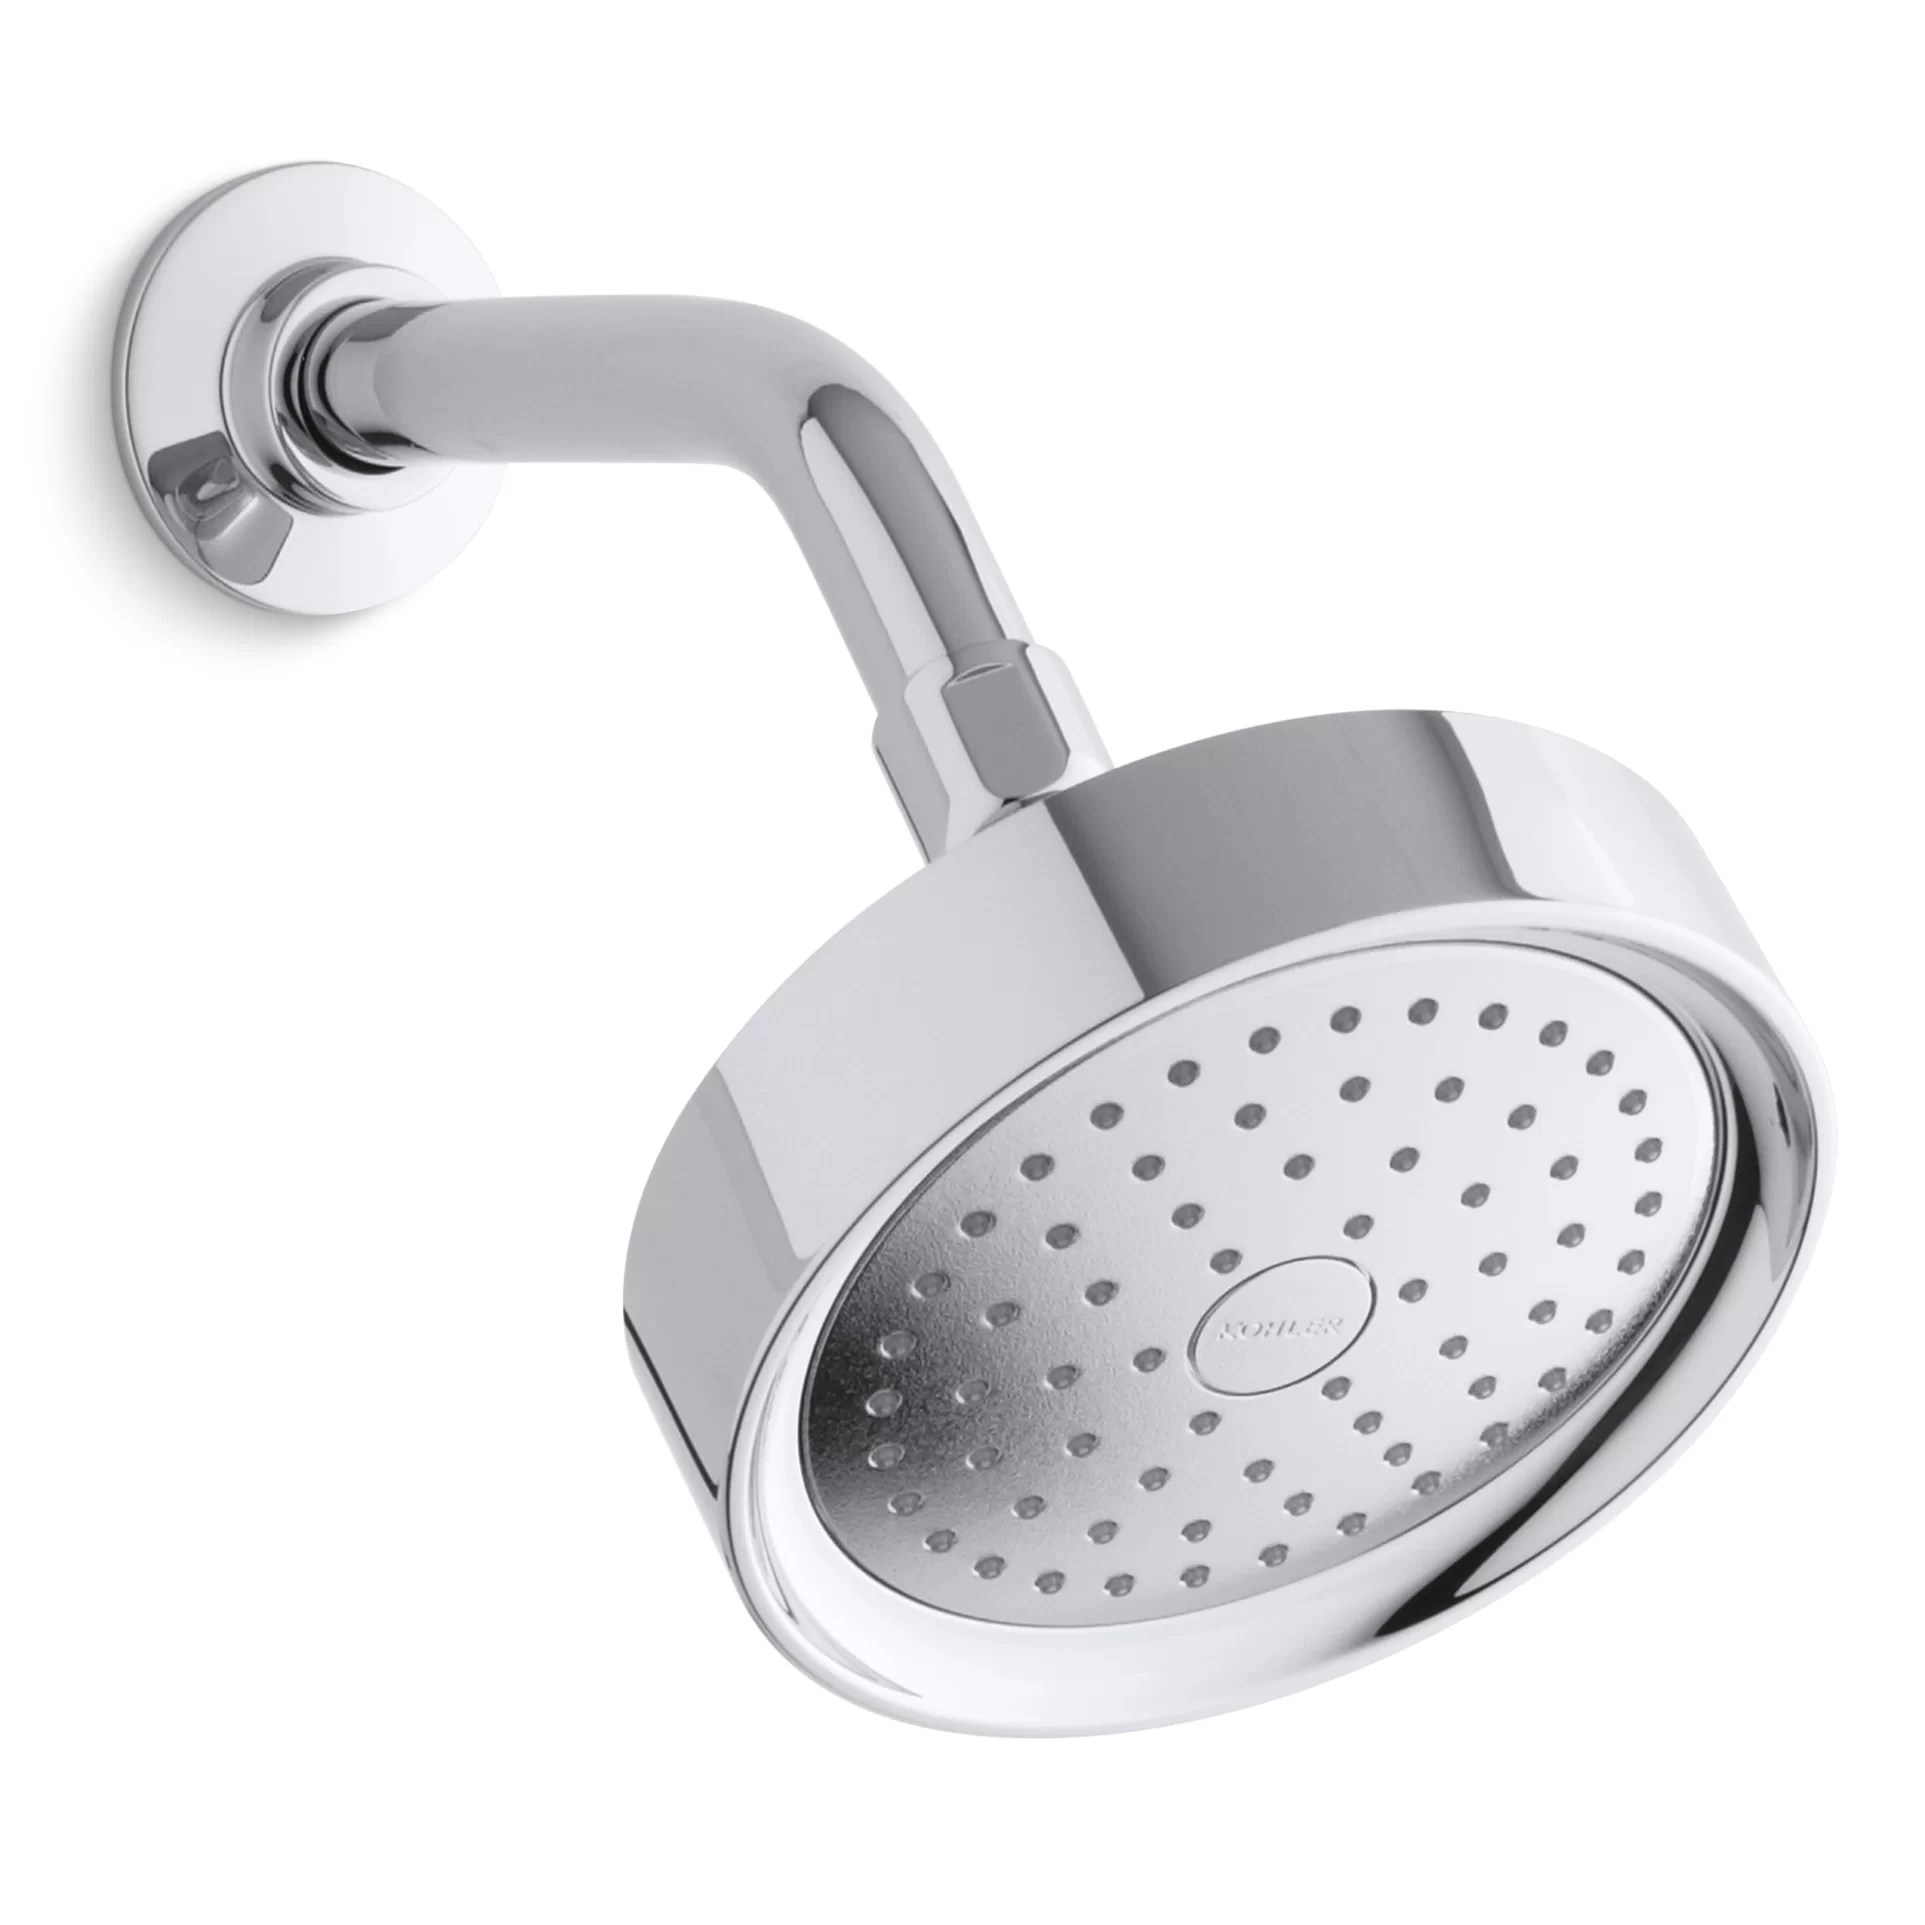 Purist 2 5 Gpm Single Function Wall Mount Shower Head With Katalyst Air Induction Spray